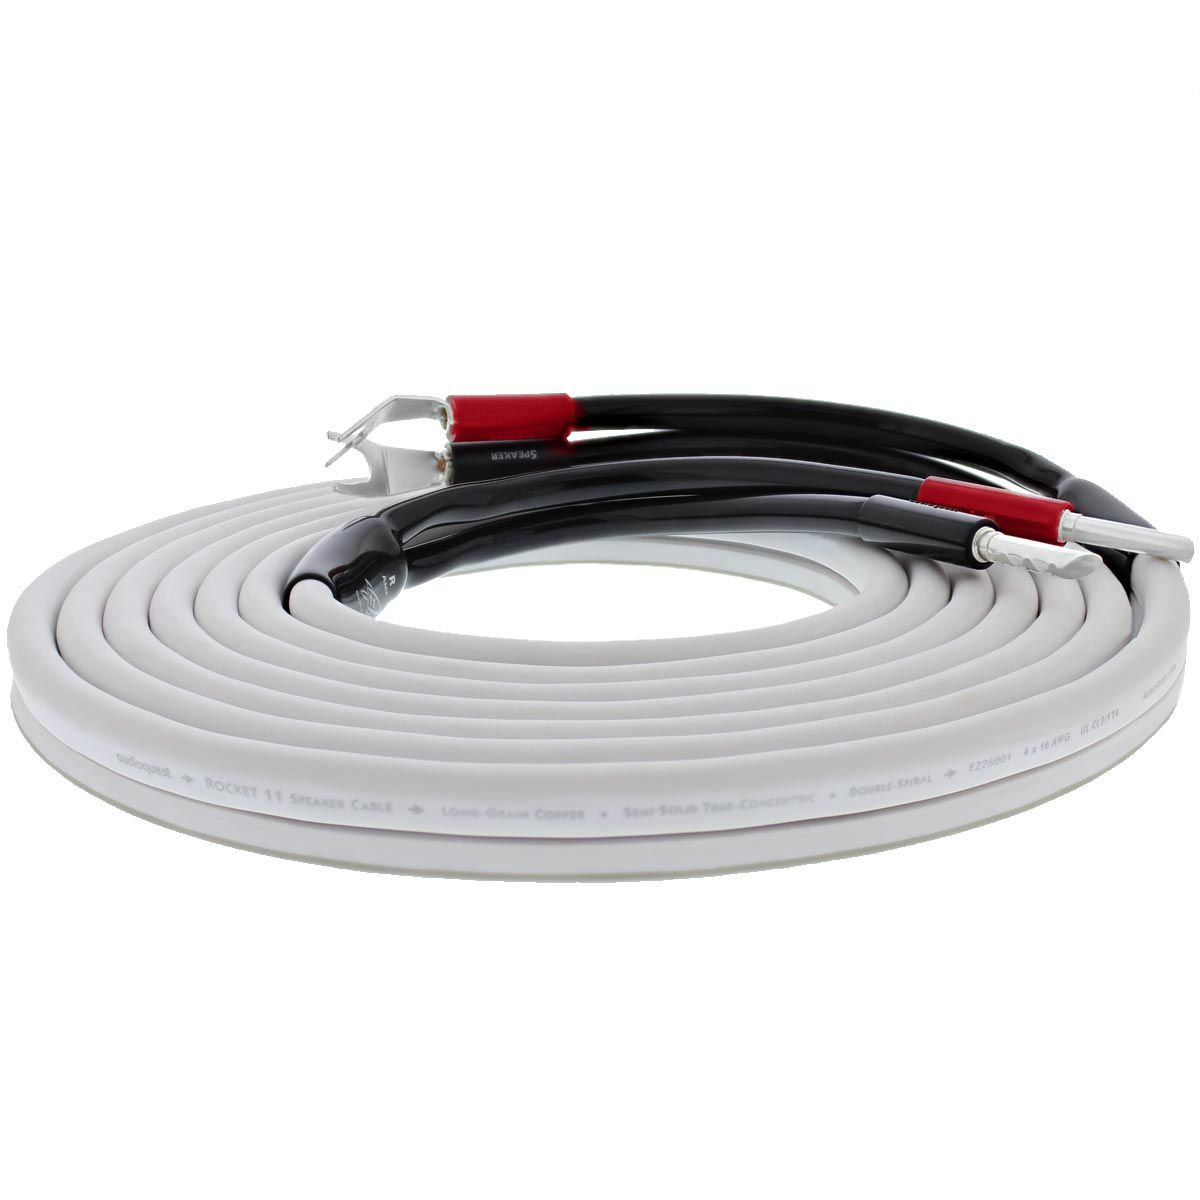 Audioquest Rocket 11 Speaker Cable Black the quantity you enter will be the number of cables you receive cut to this length. 10 metre length cut from the drum